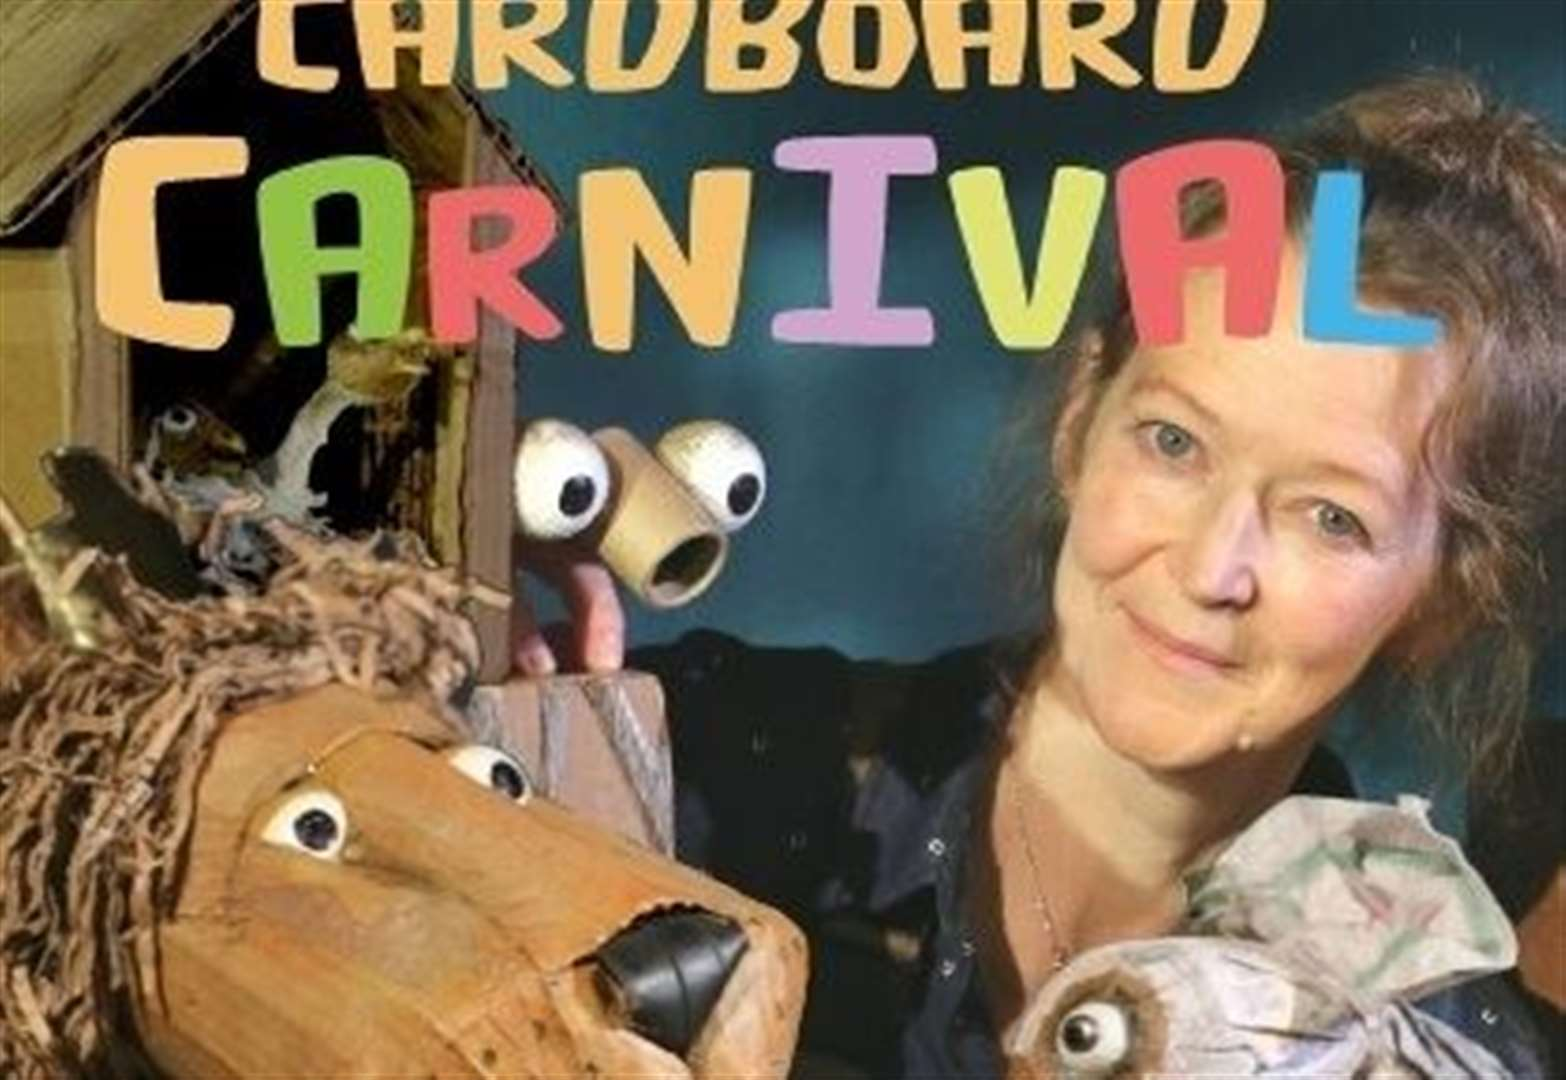 Crowland Abbey hosts a 'Cardboard Carnival' show for families this Sunday (May 11)